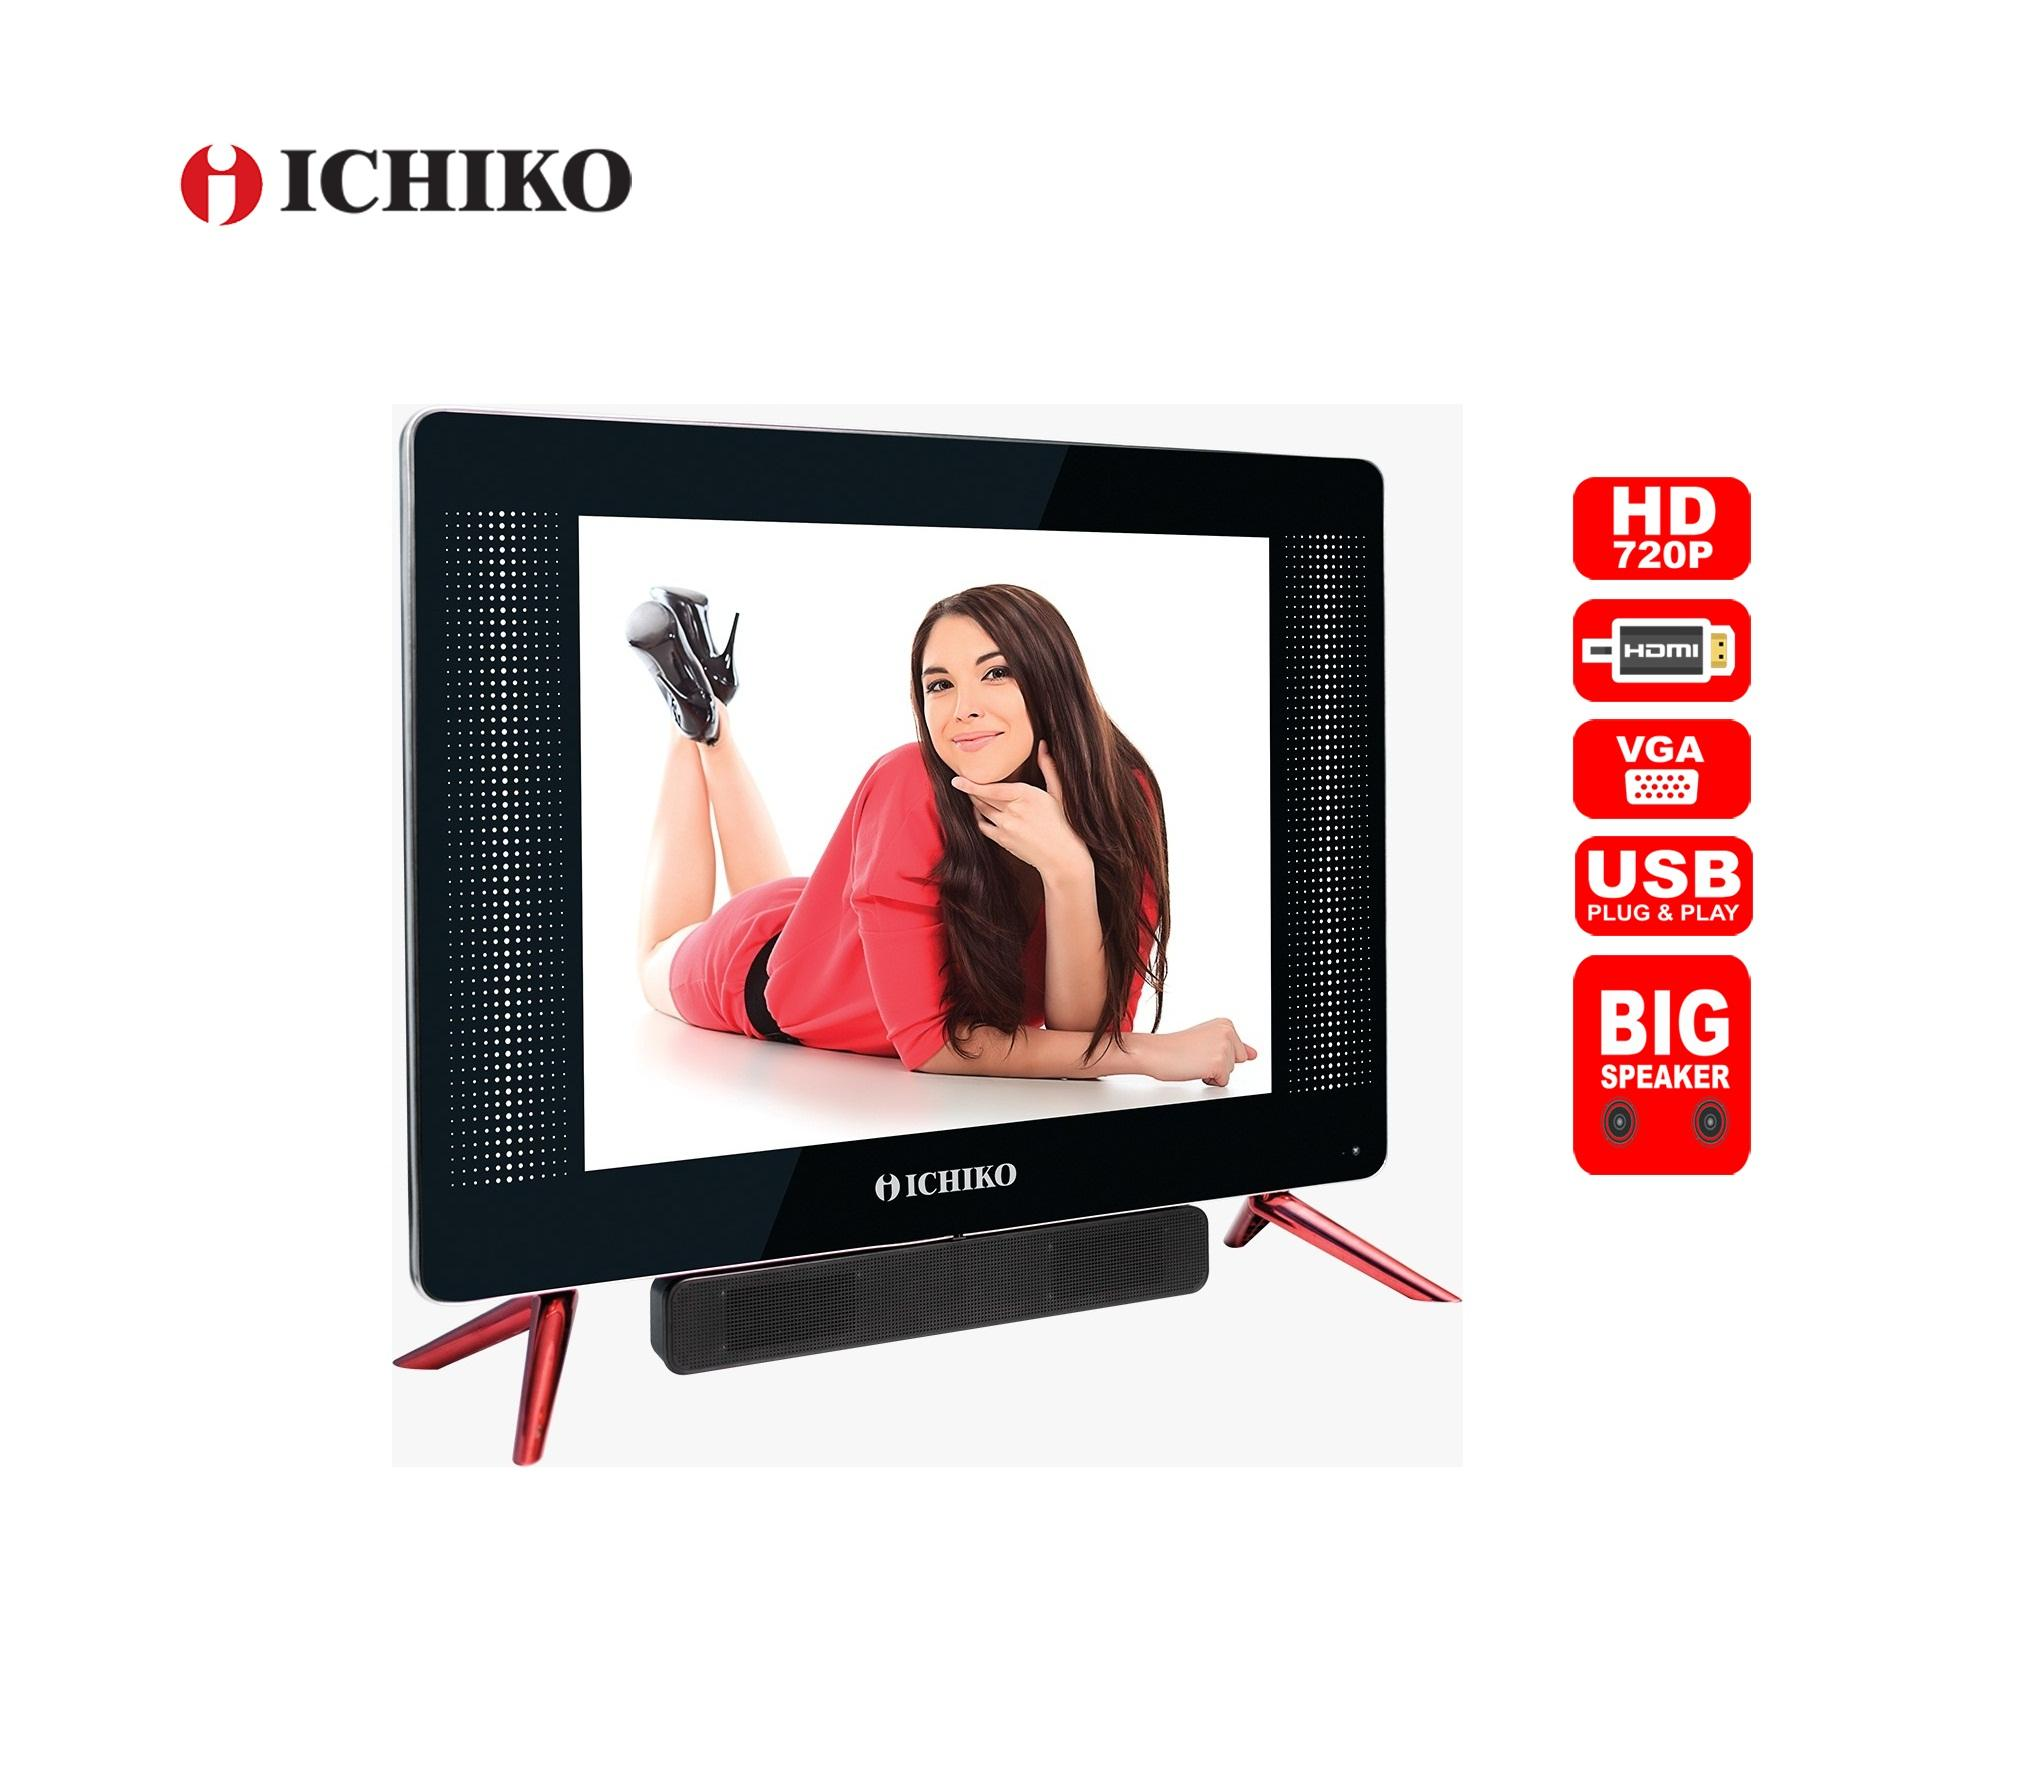 ICHIKO LED TV 19 HD Plug & Movie USB HDMI S1919